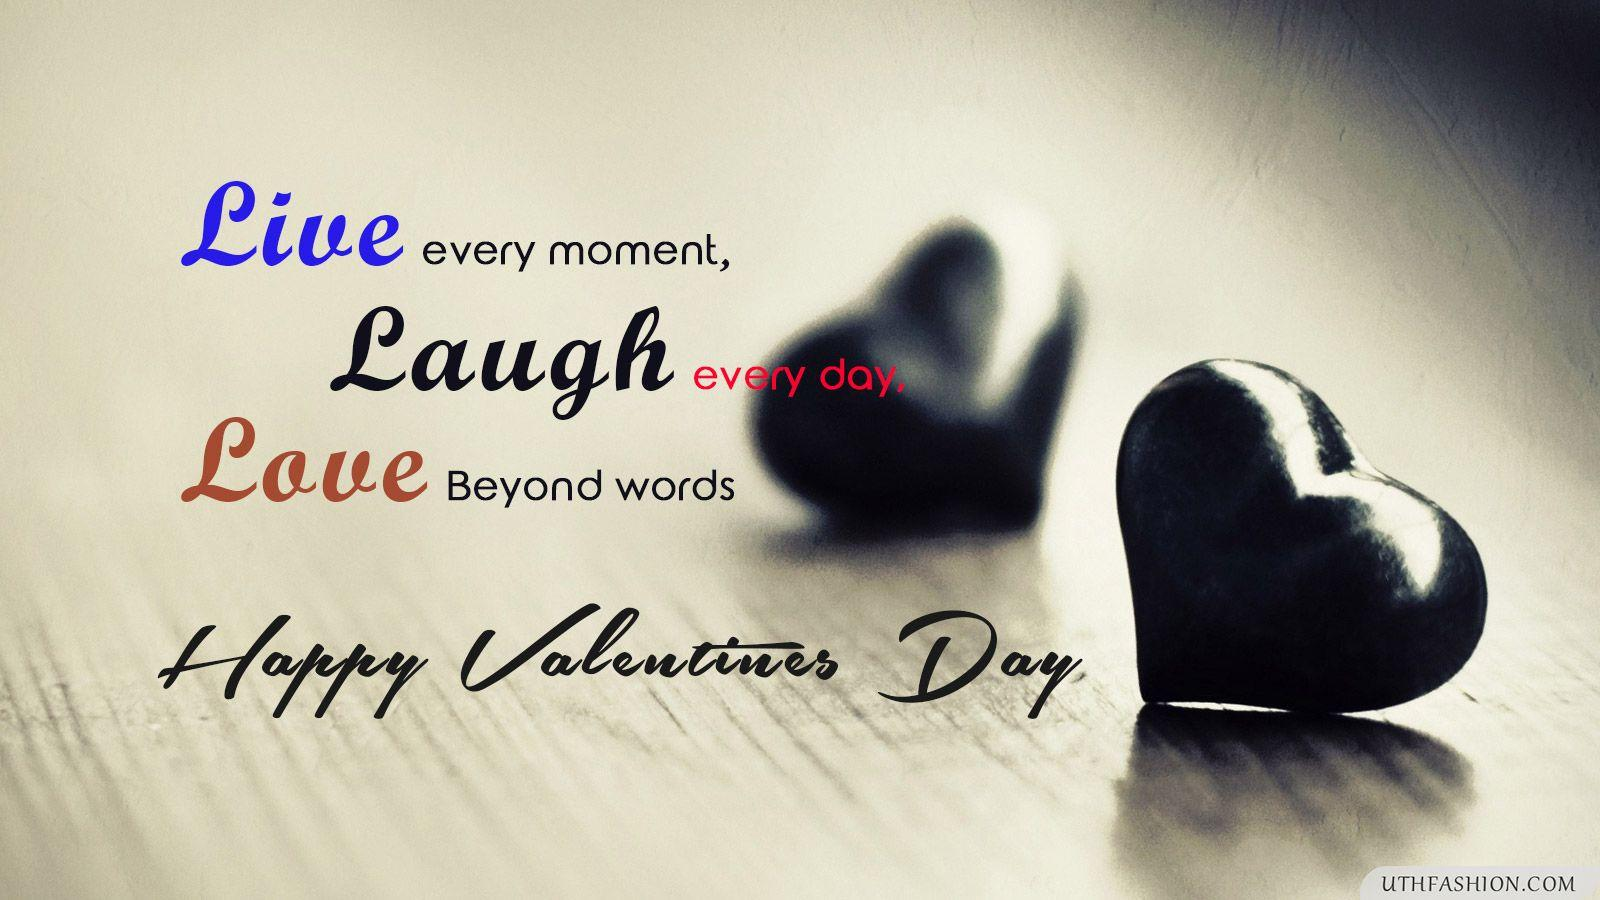 Beautiful Love Quotation Wallpapers Wallpaper Cave